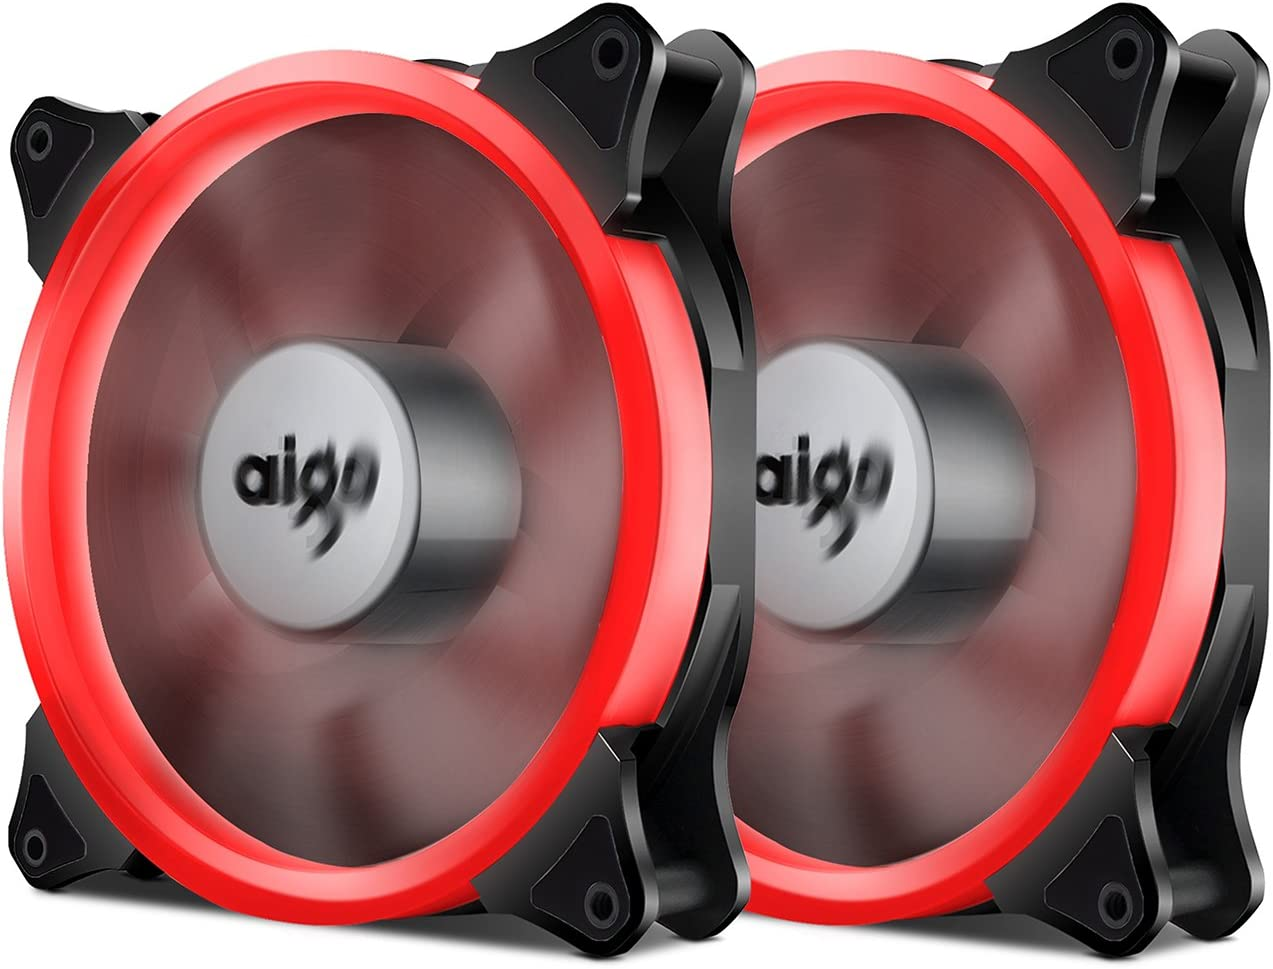 Aigo Halo Ring Fan 140mm Case Fan Quiet Edition High Airflow Adjustable Color LED Case Fan for PC Cases, CPU Coolers,Radiators 4 Pin/3 Pin (140mm, 2 Pack Red)